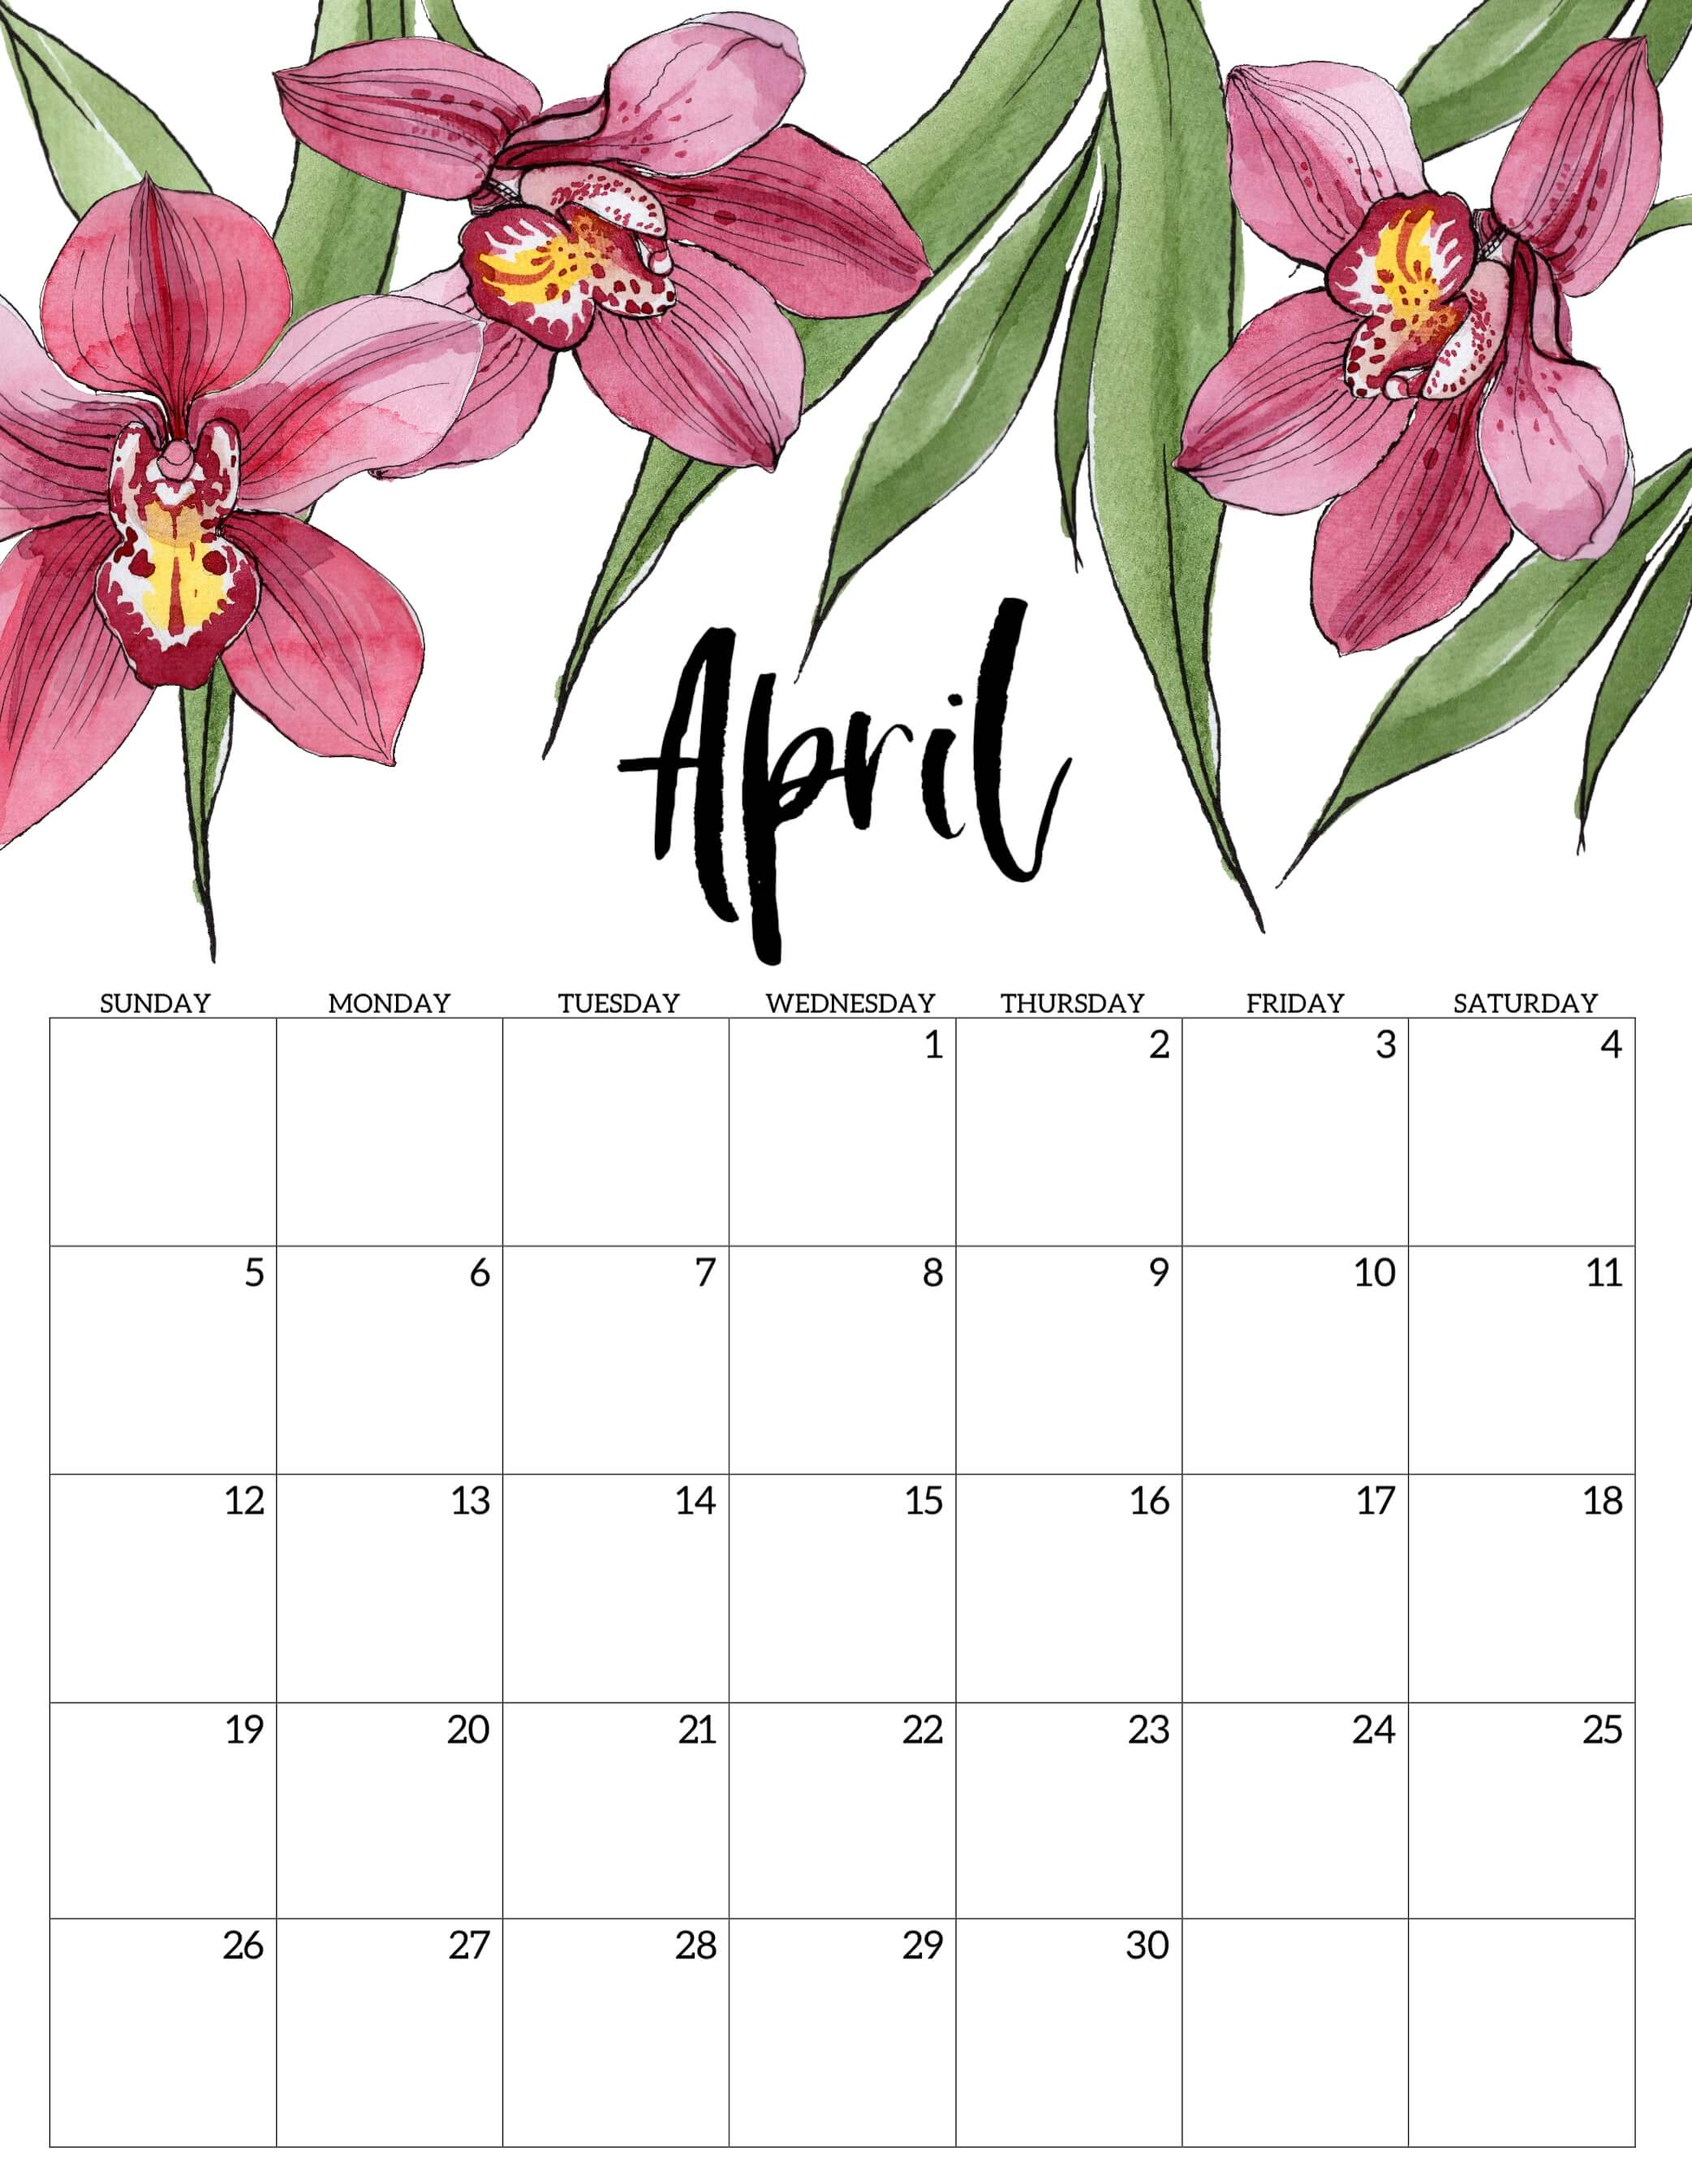 Cute April 2020 Calendar Floral Wallpaper For Desktop iPhone